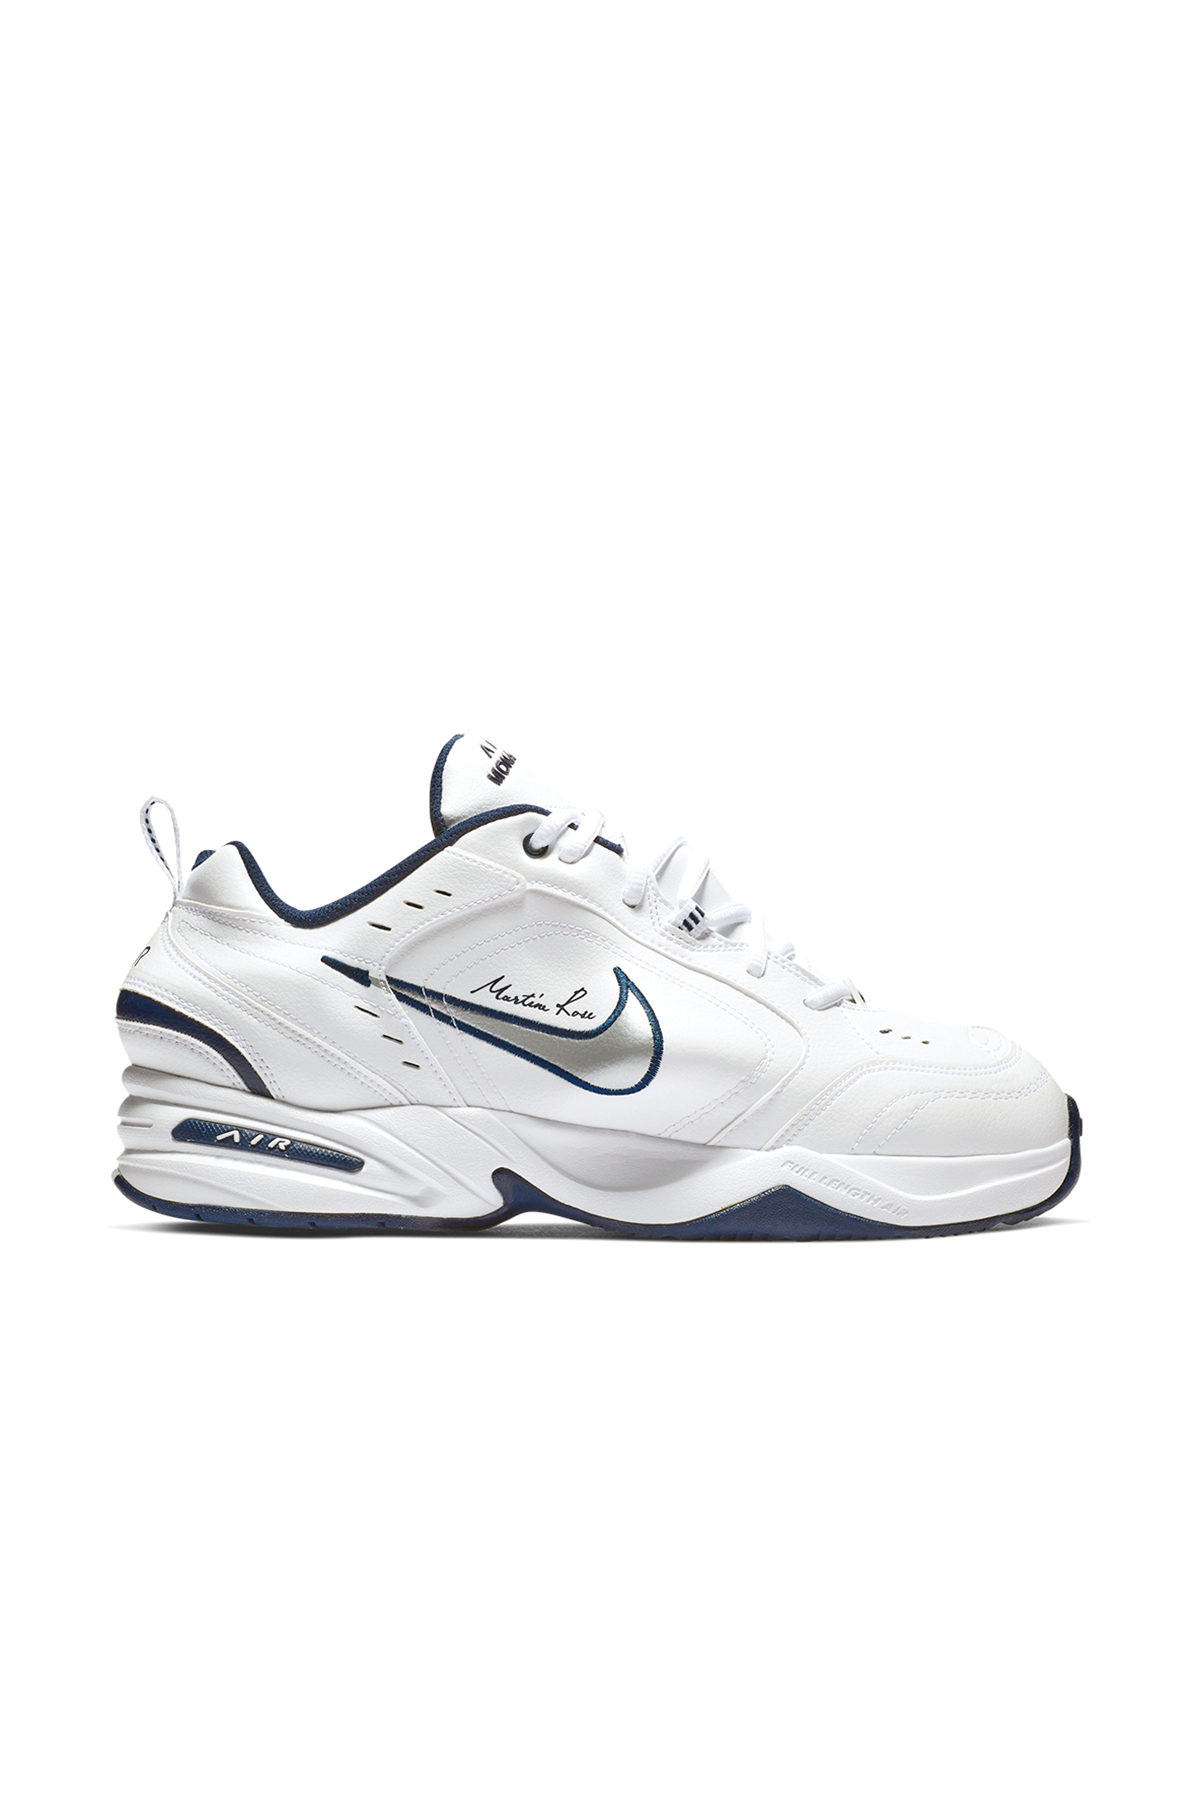 new style 9d1b2 02ee8 Nike Air Monarch IV х Martine Rose Sneakers - KM20 Online Store